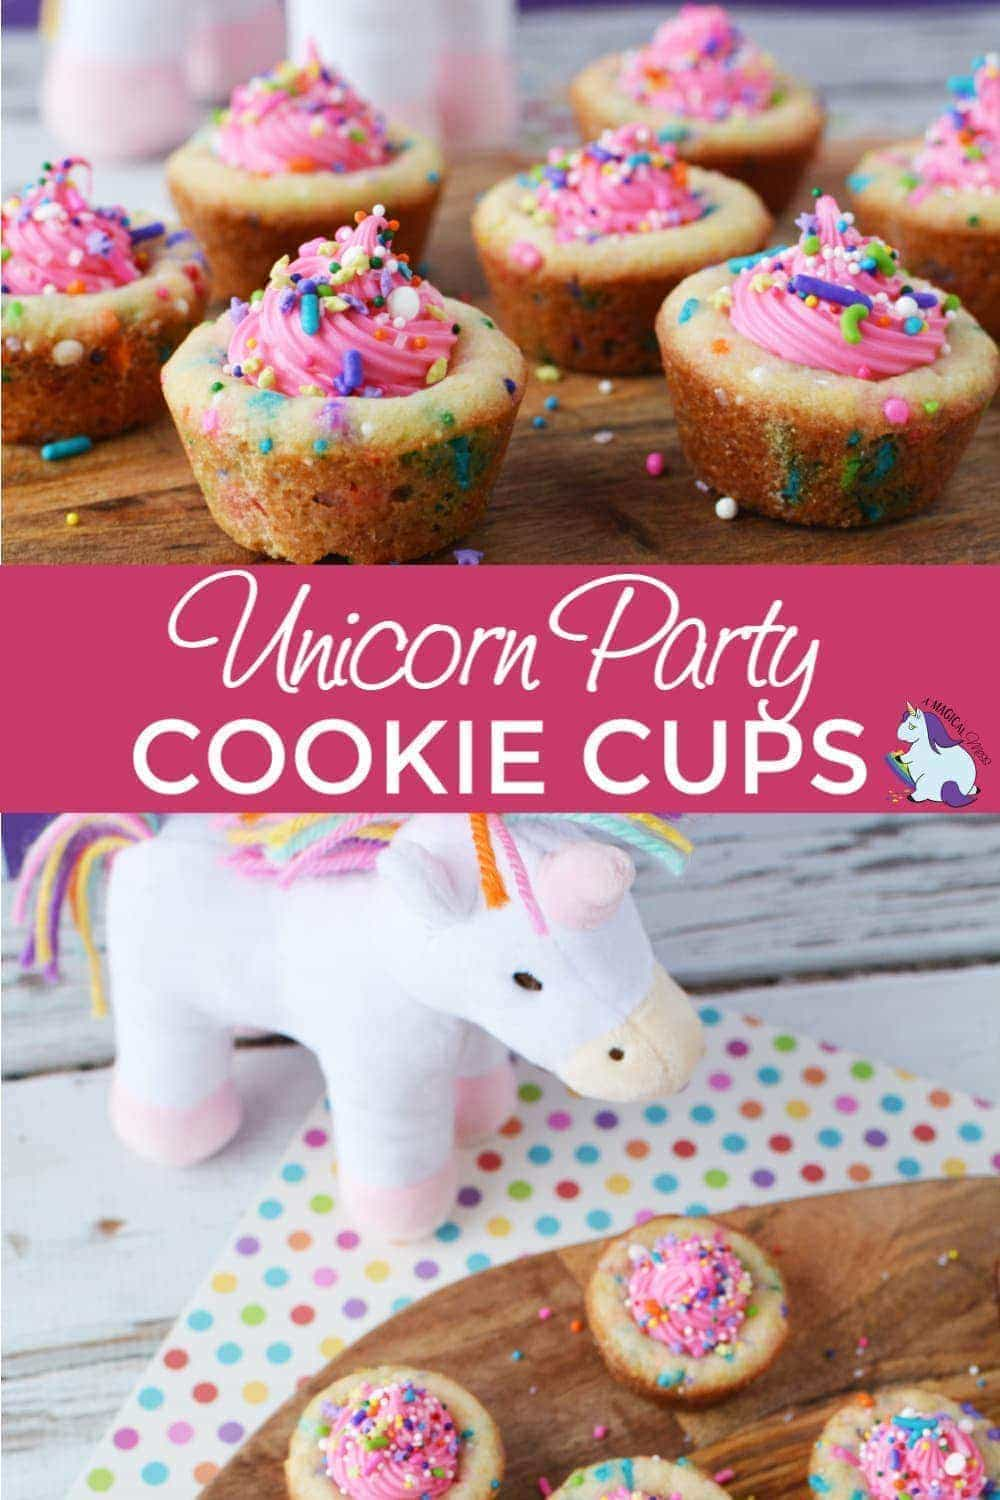 Unicorn Party Cookie Cups Recipe #unicorn #unicornparty #pink #cookies #cookiecups #sprinkles #colorful #party #themedparties #baking #treats